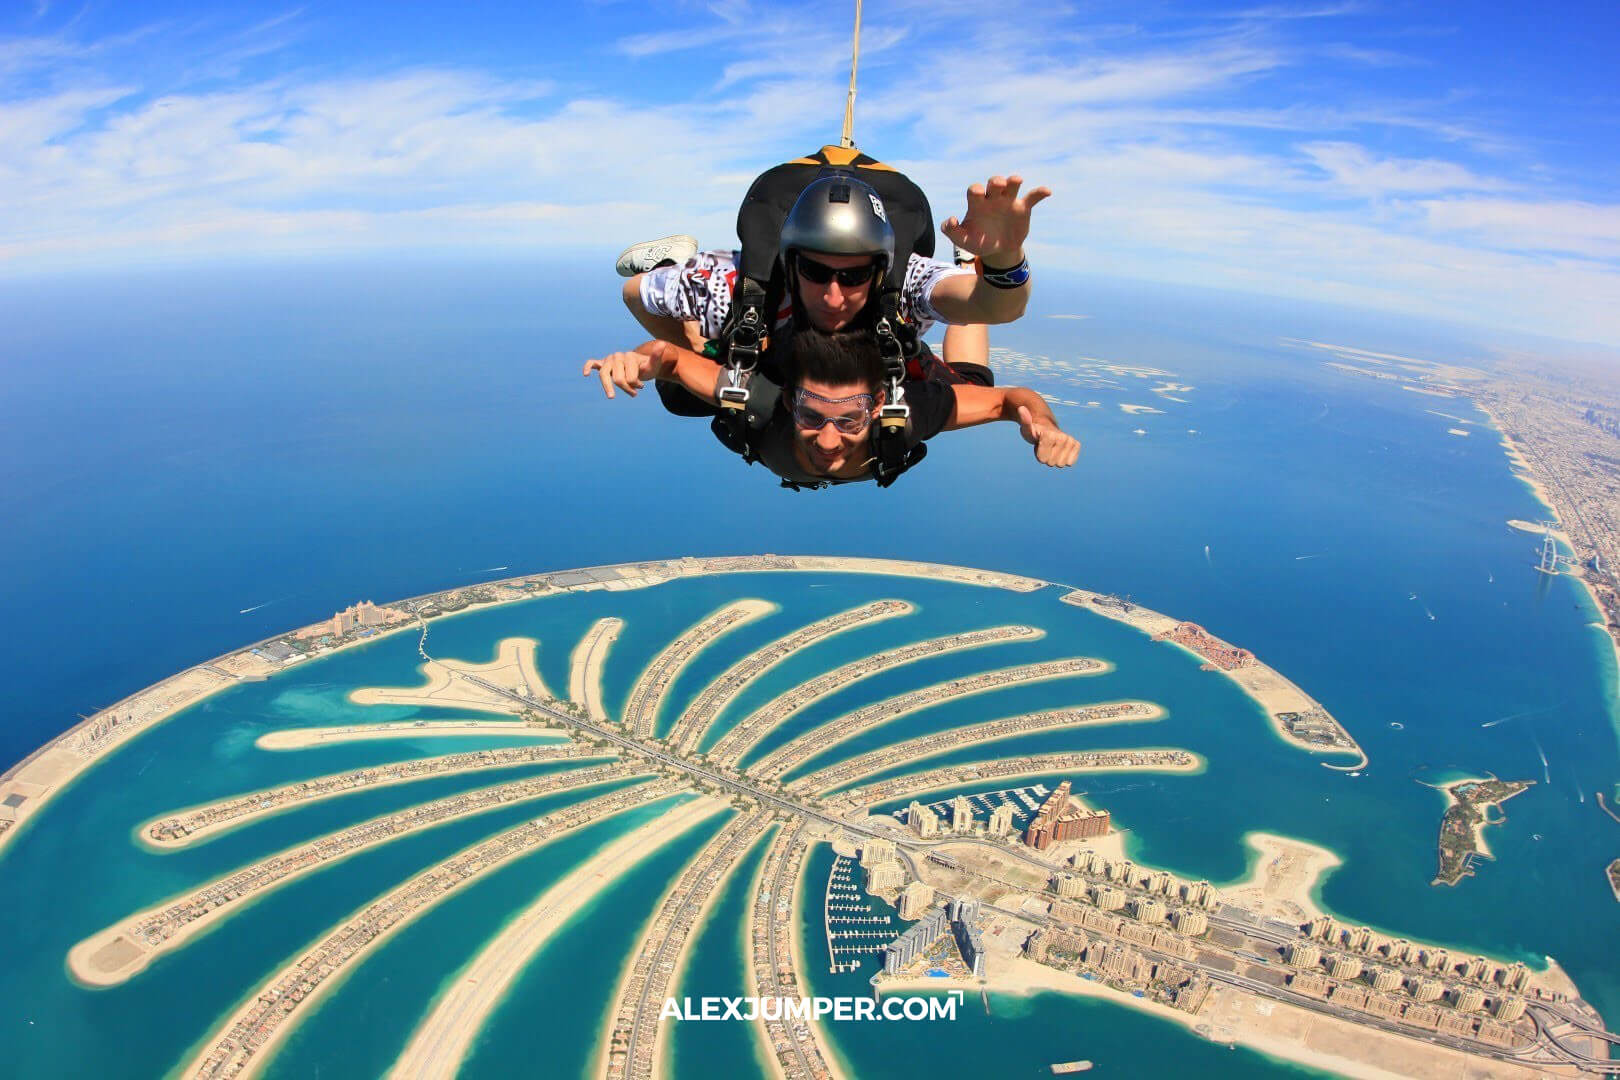 teletransportacion-posible-24horas-skydiving-dubai-alex-jumper